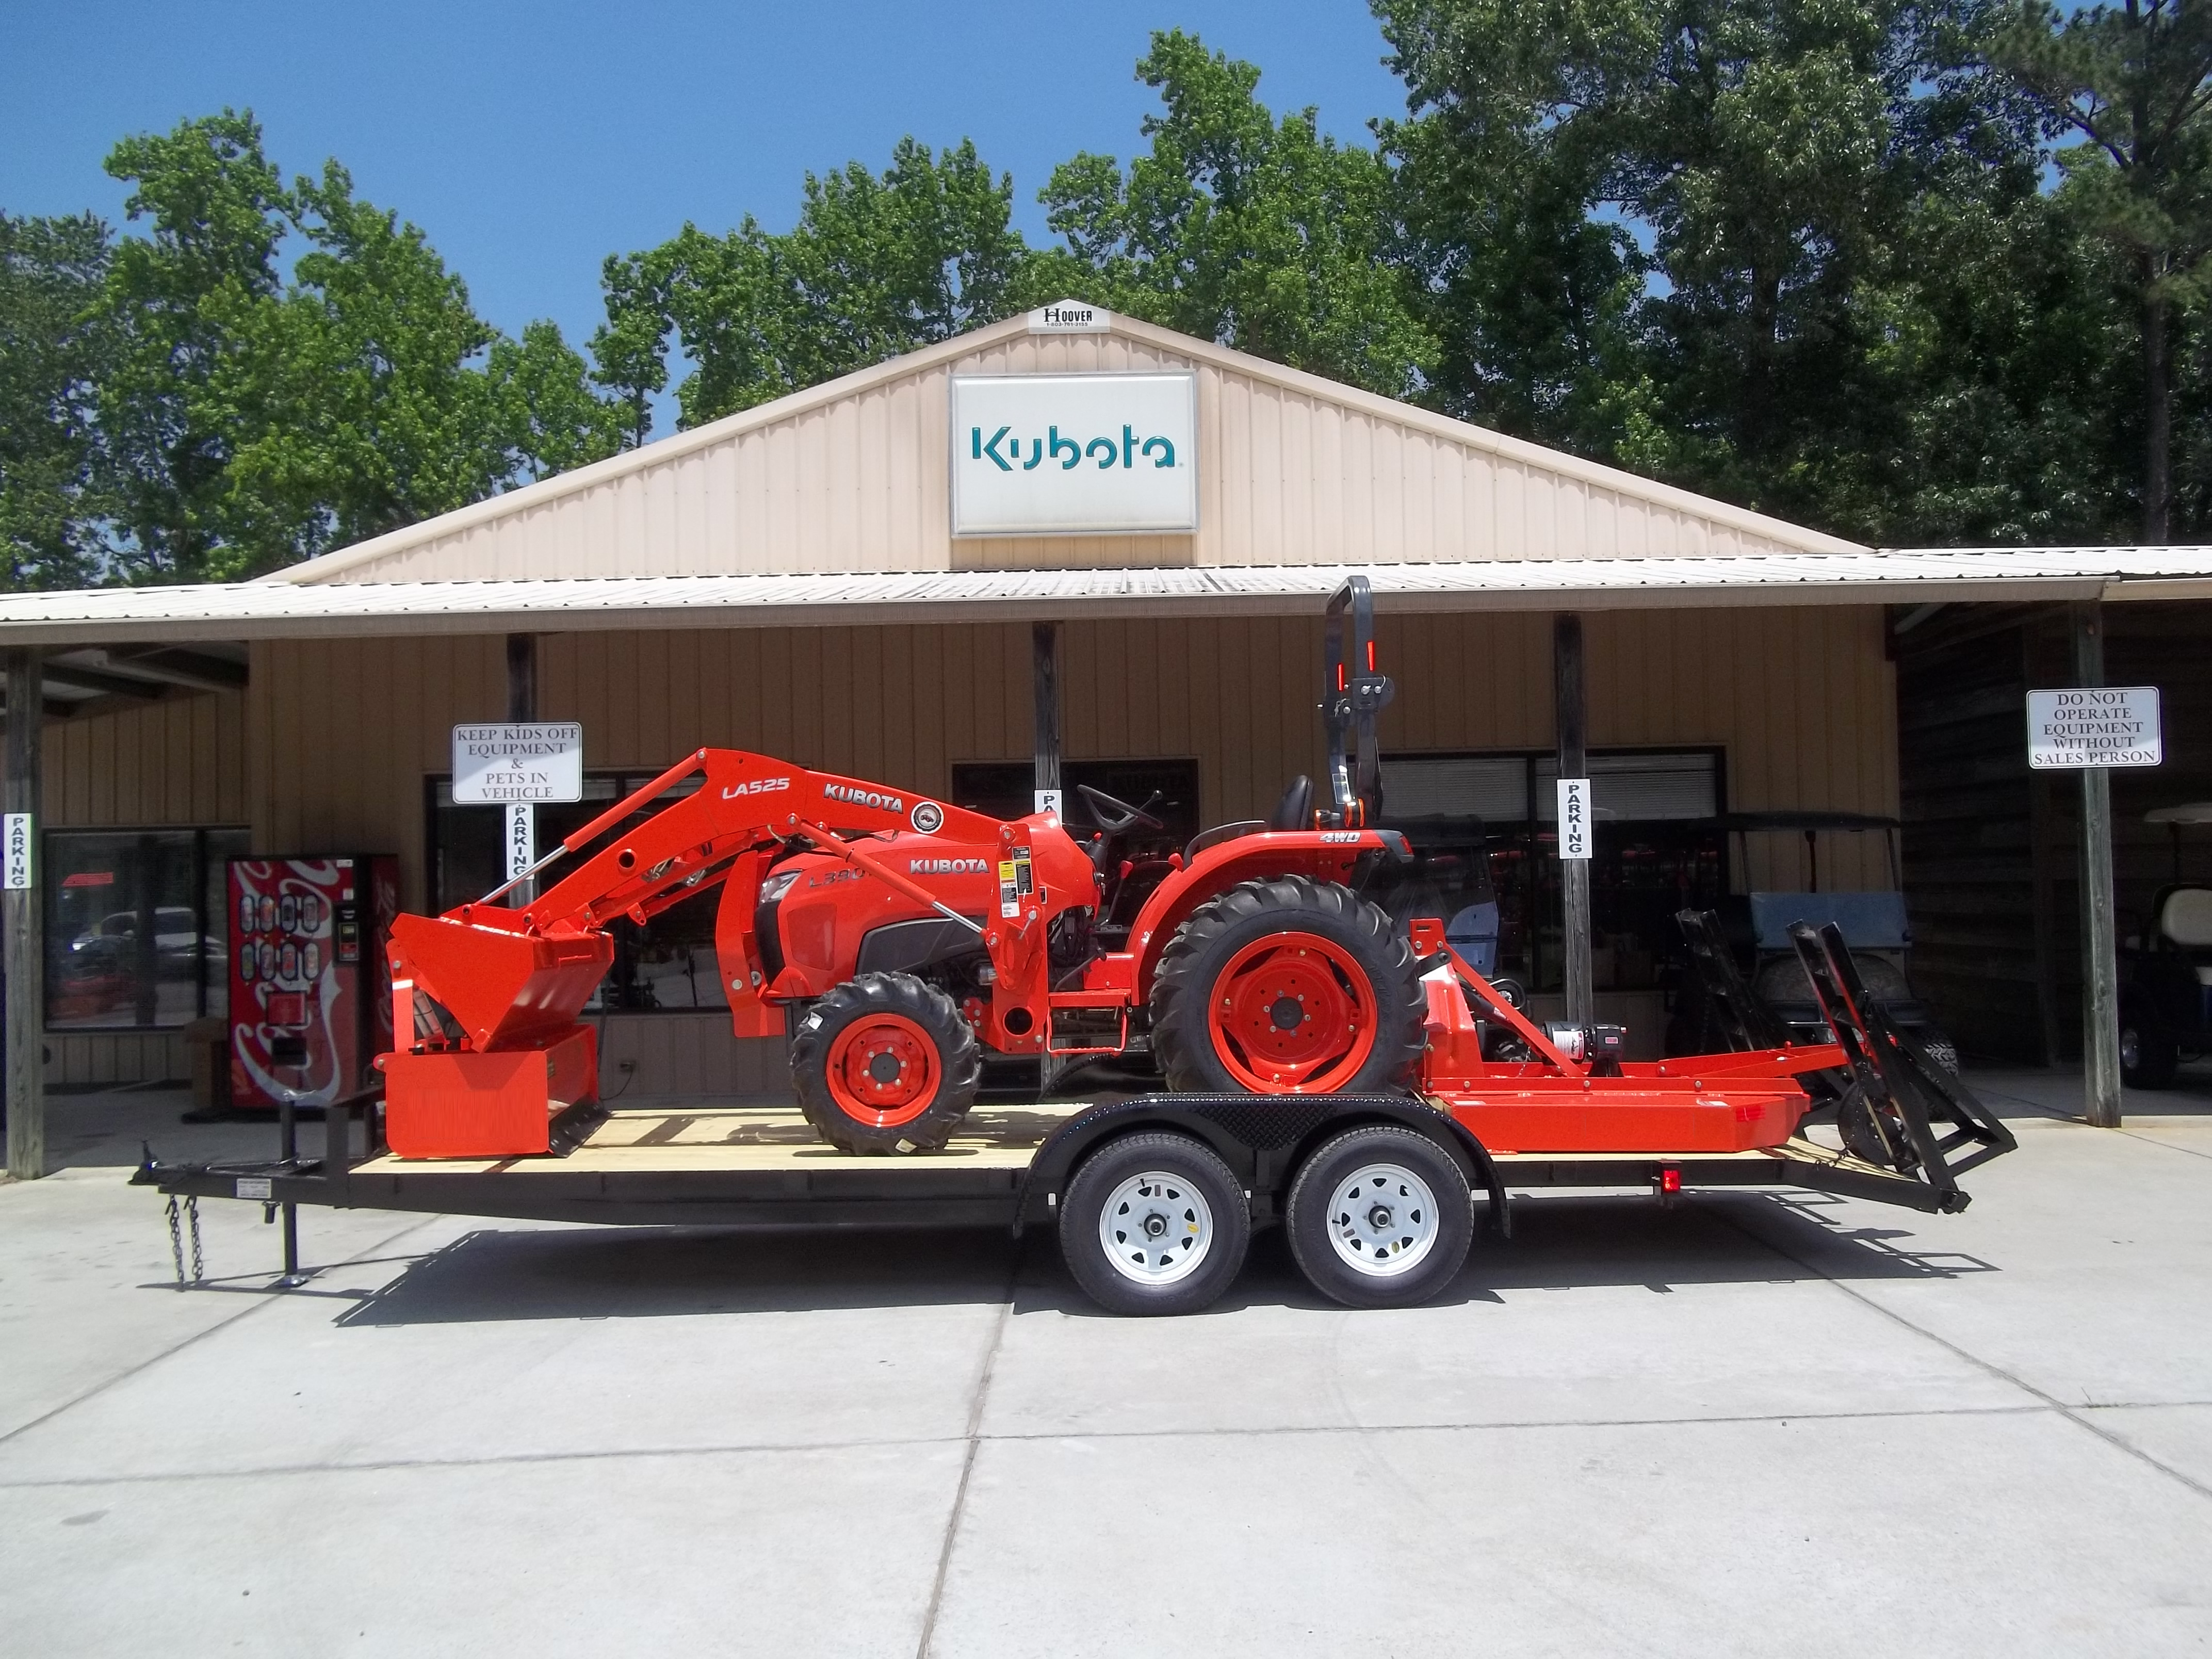 Kubota tractors for sale in kentucky - New Kubota L3901hst Tractor Package 4